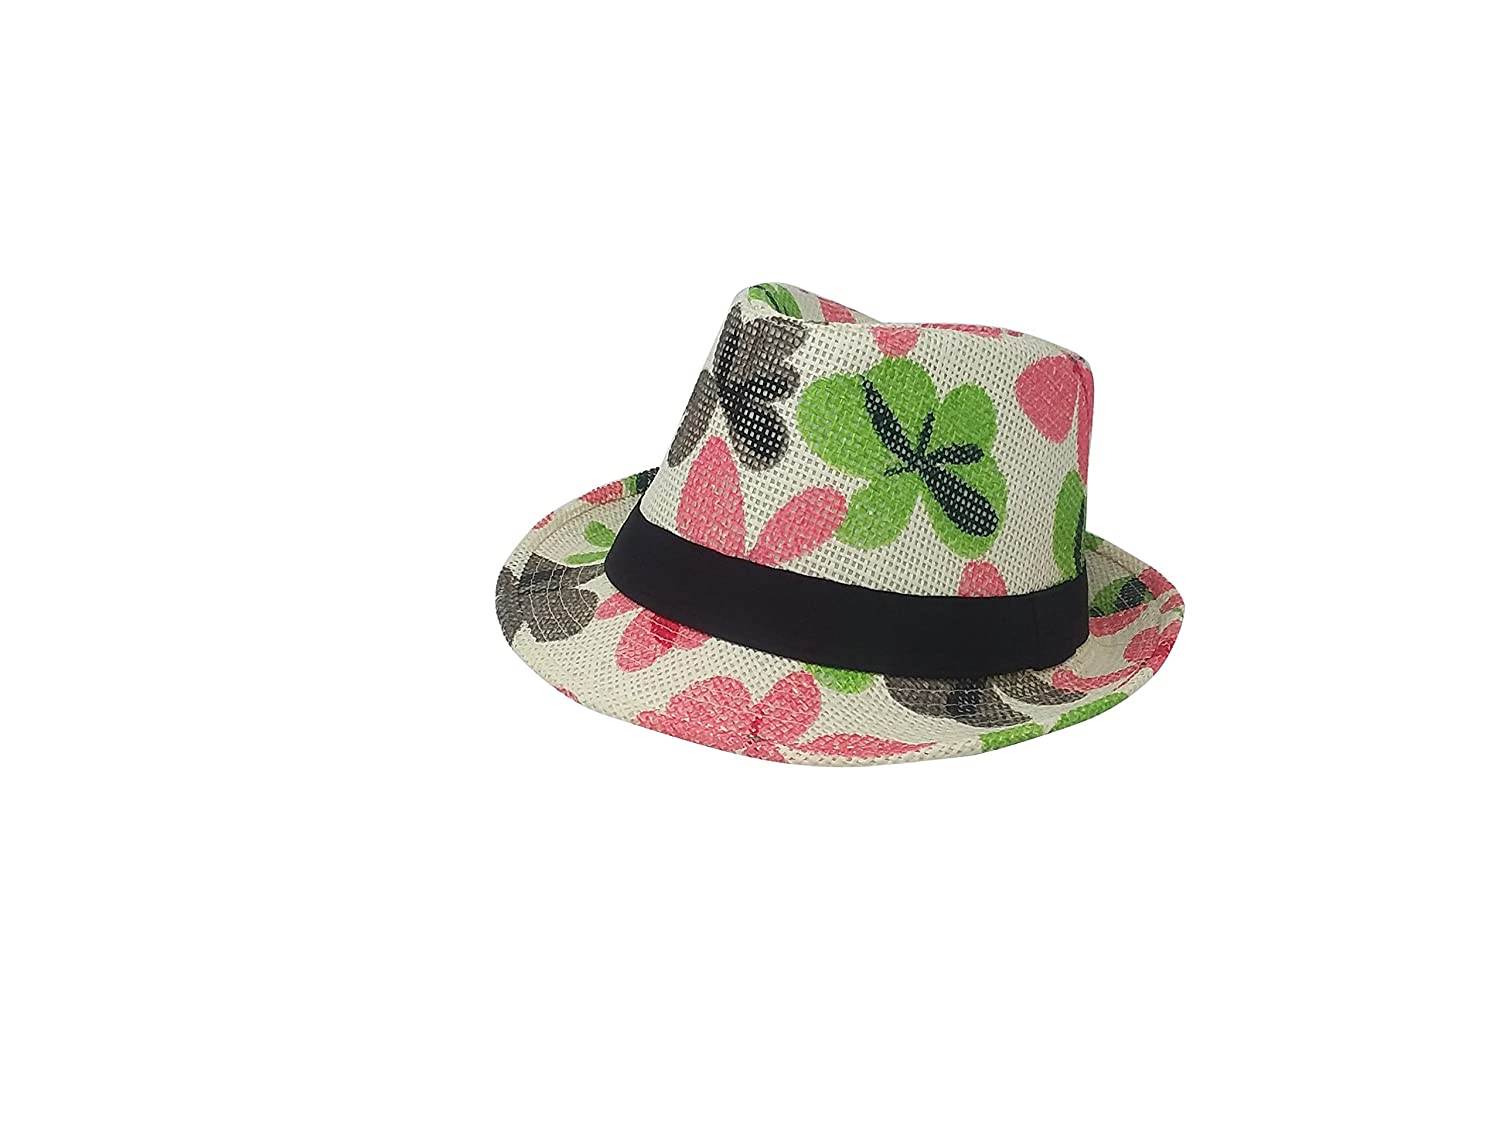 9dd9a5c65 Chachlili 12 Womans/Mens Colorful Flower Petals Fedoras Casual ...